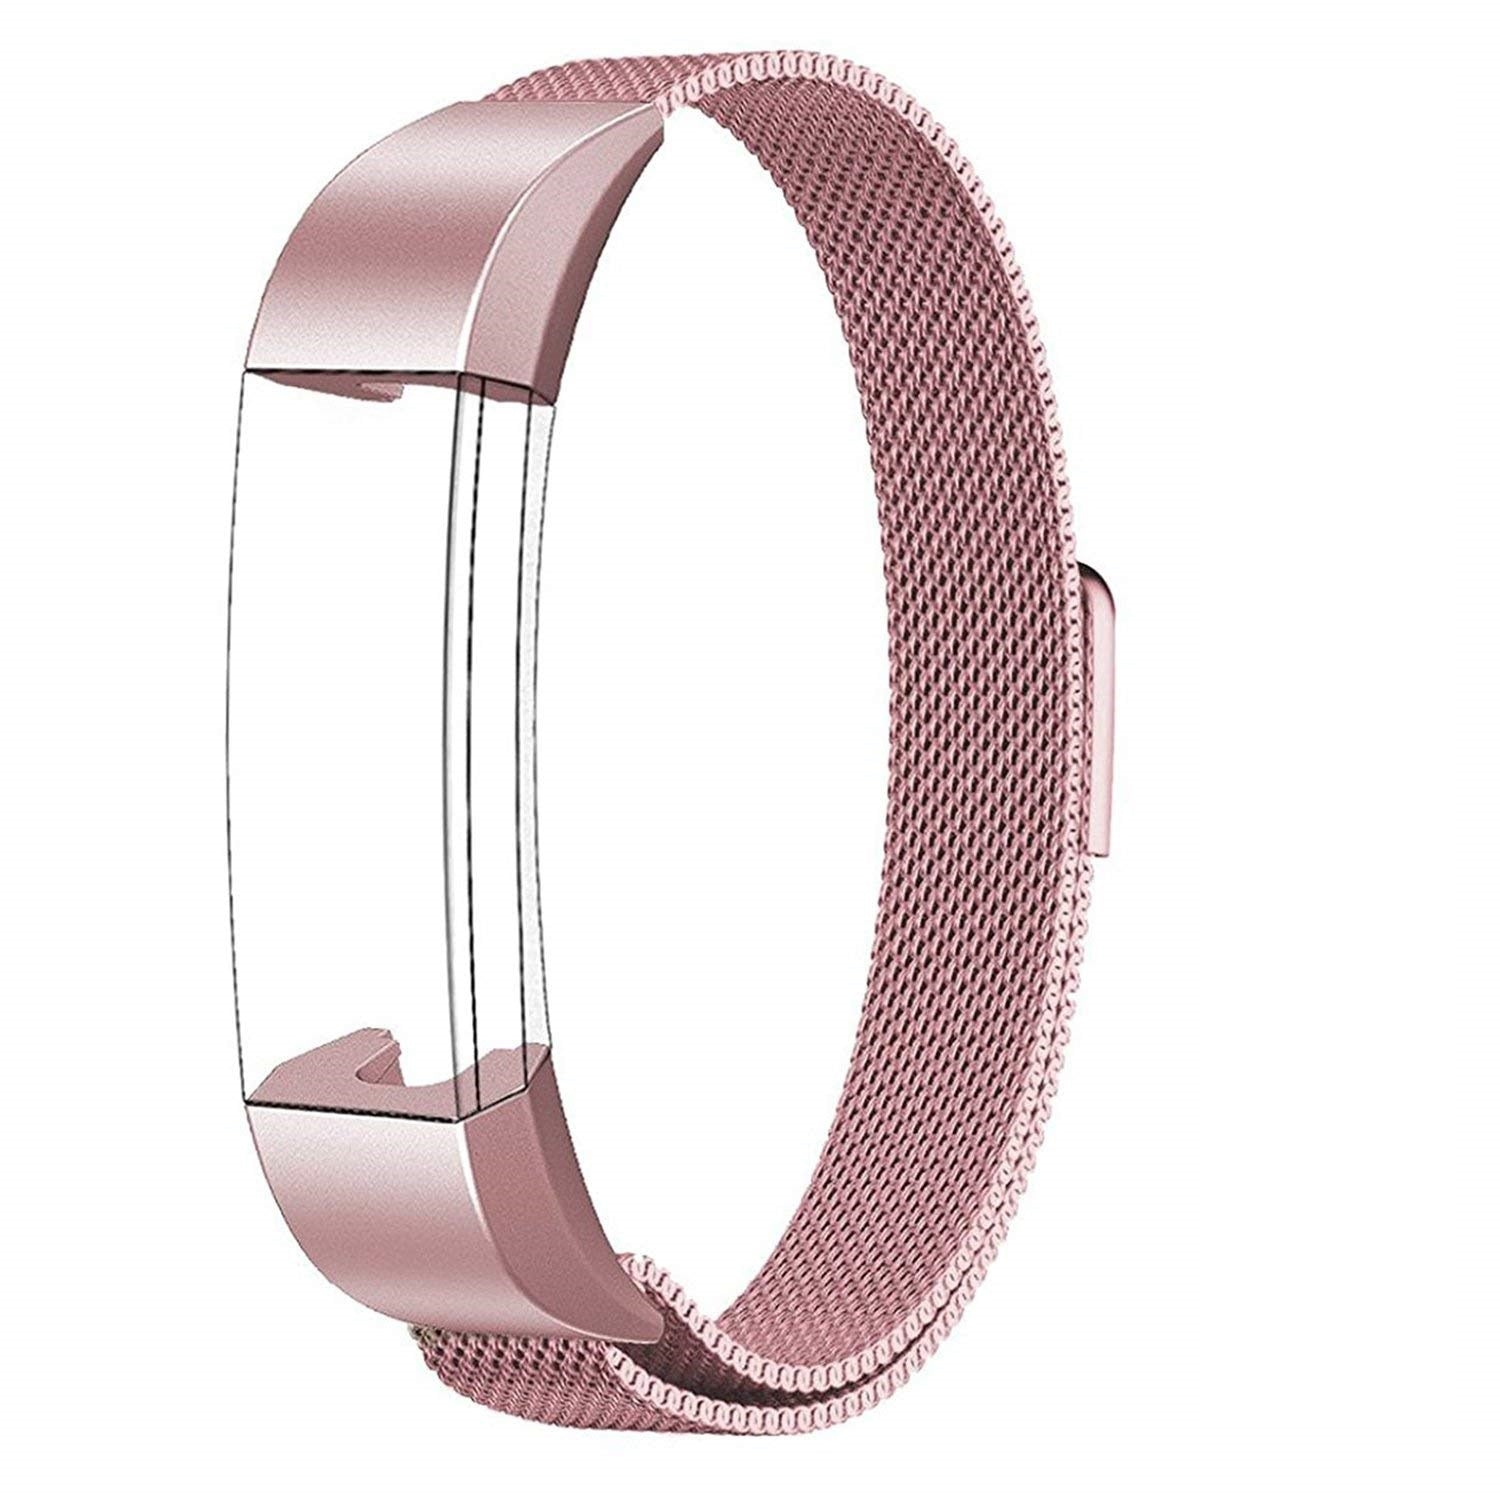 Linxure Milanese Replacement Strap for the Fitbit Alta - Small | Monthly Madness